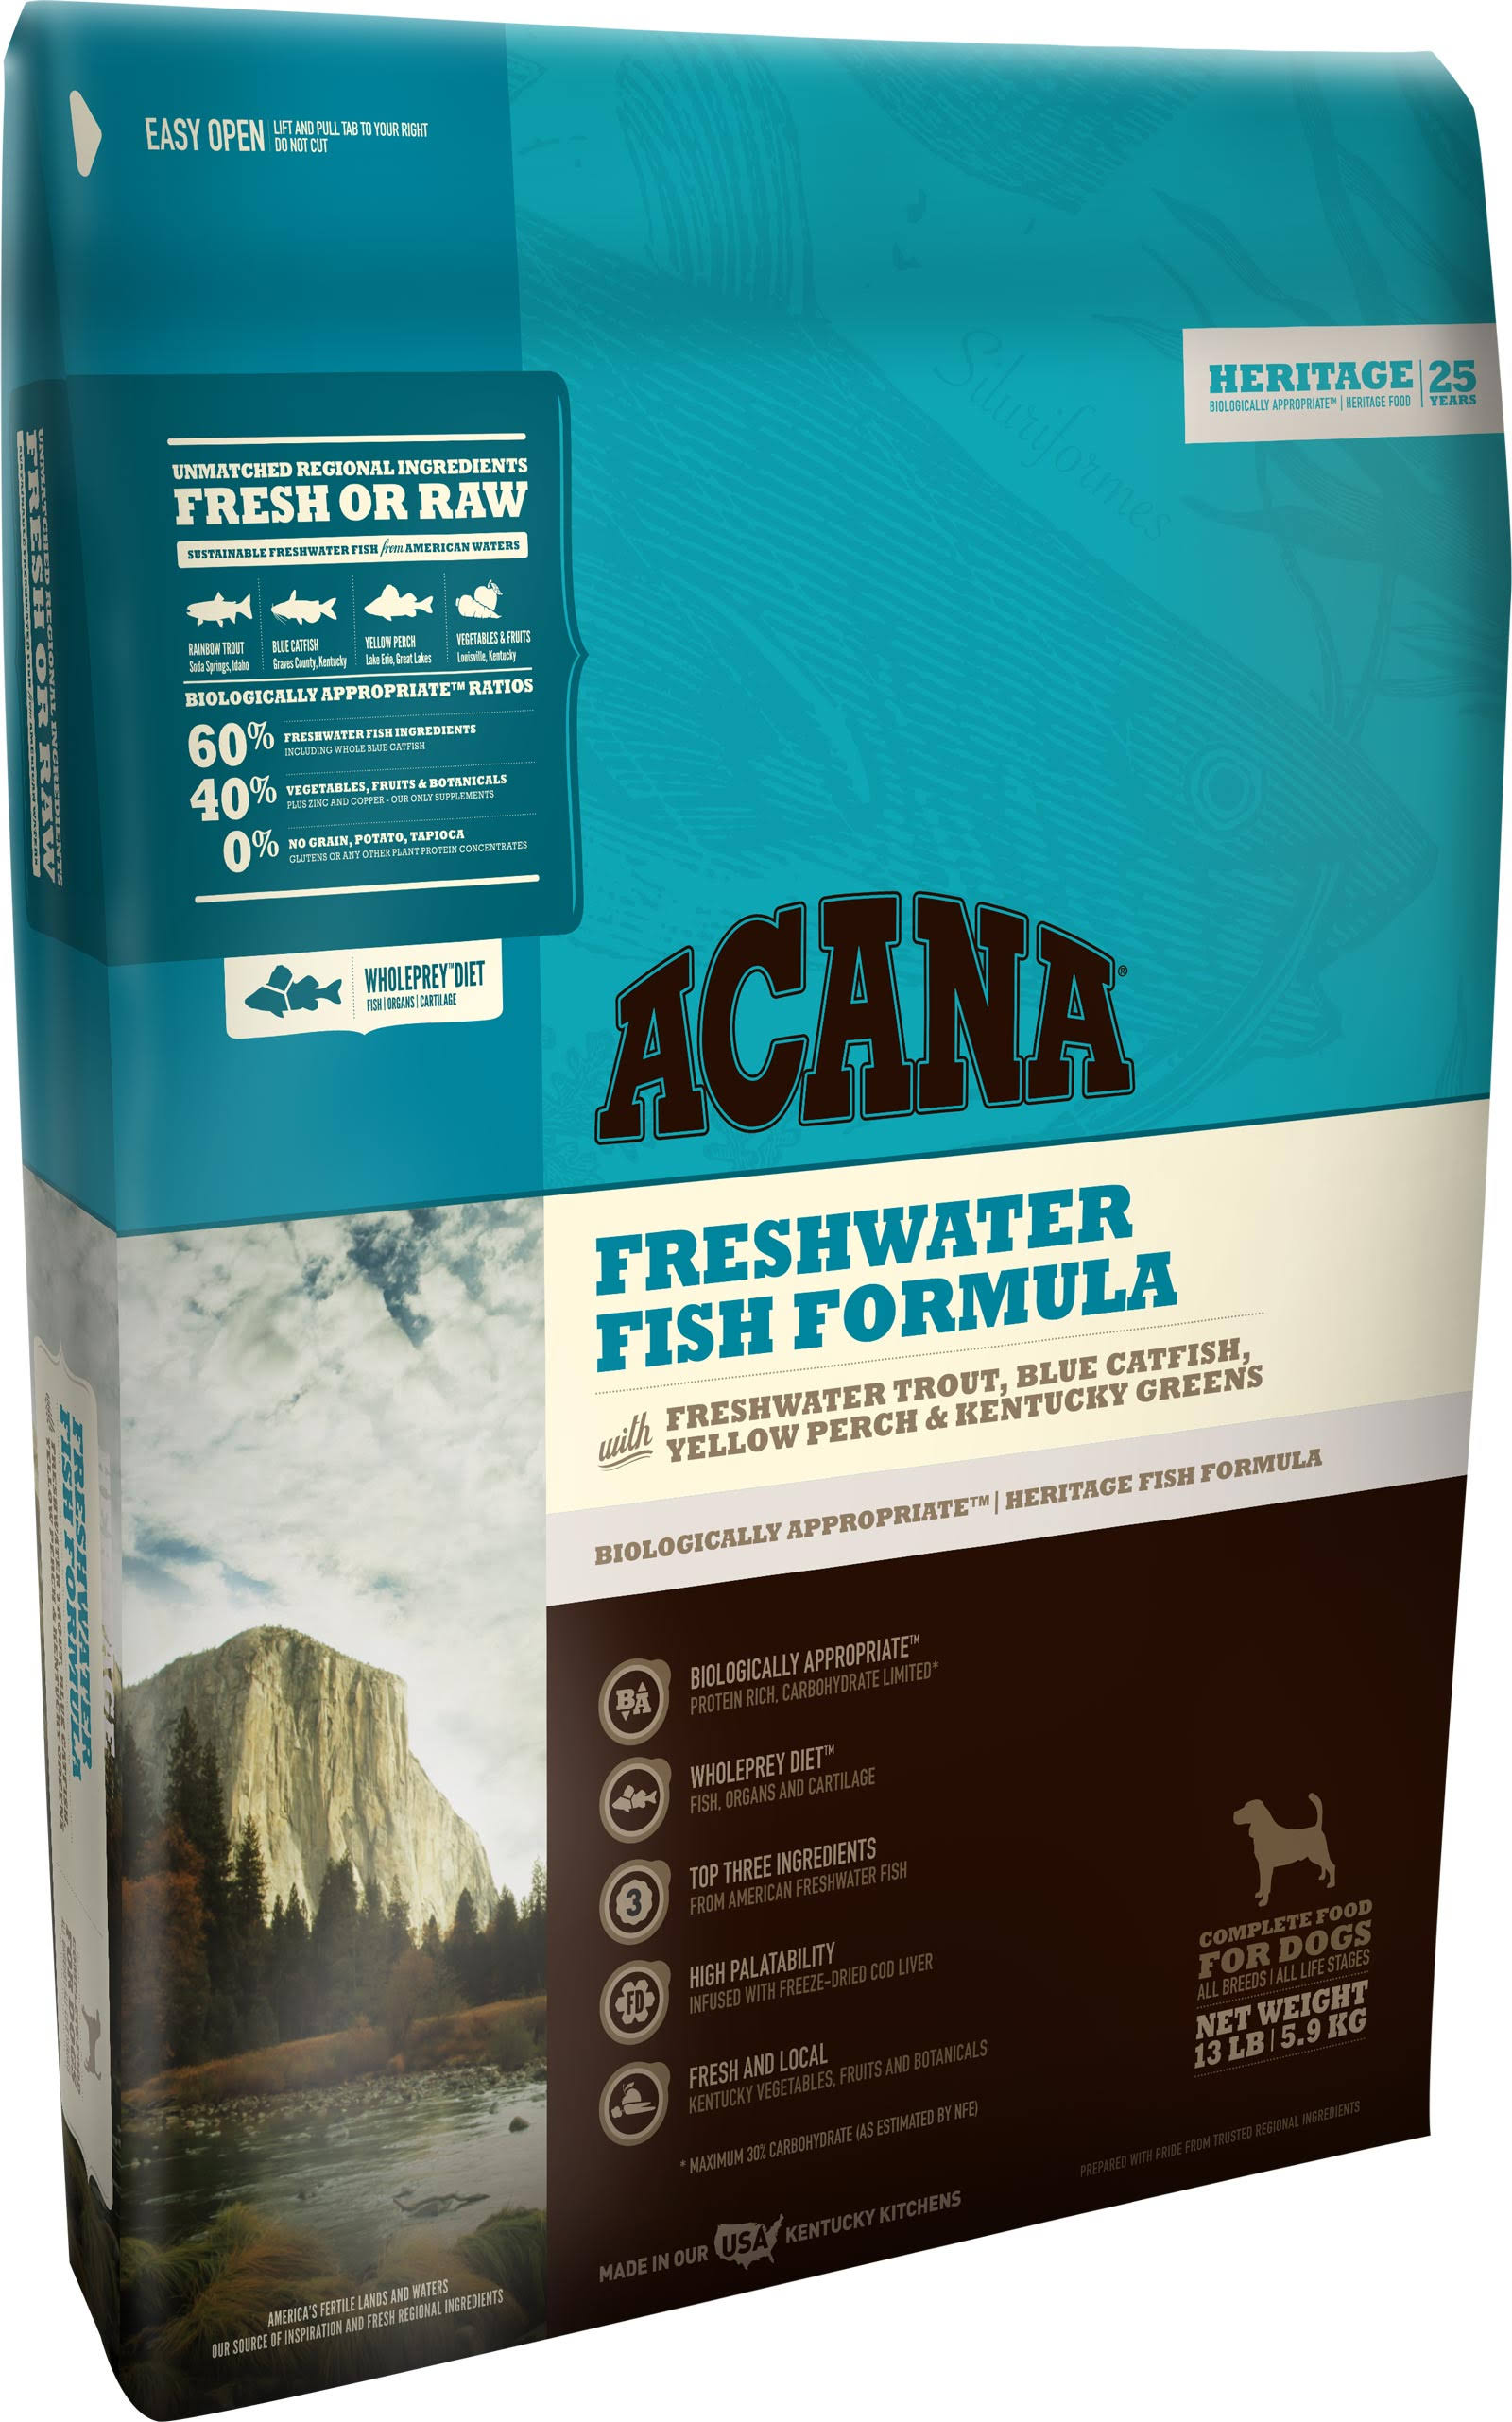 ACANA Freshwater Fish Heritage Dog Food 4.5 lb